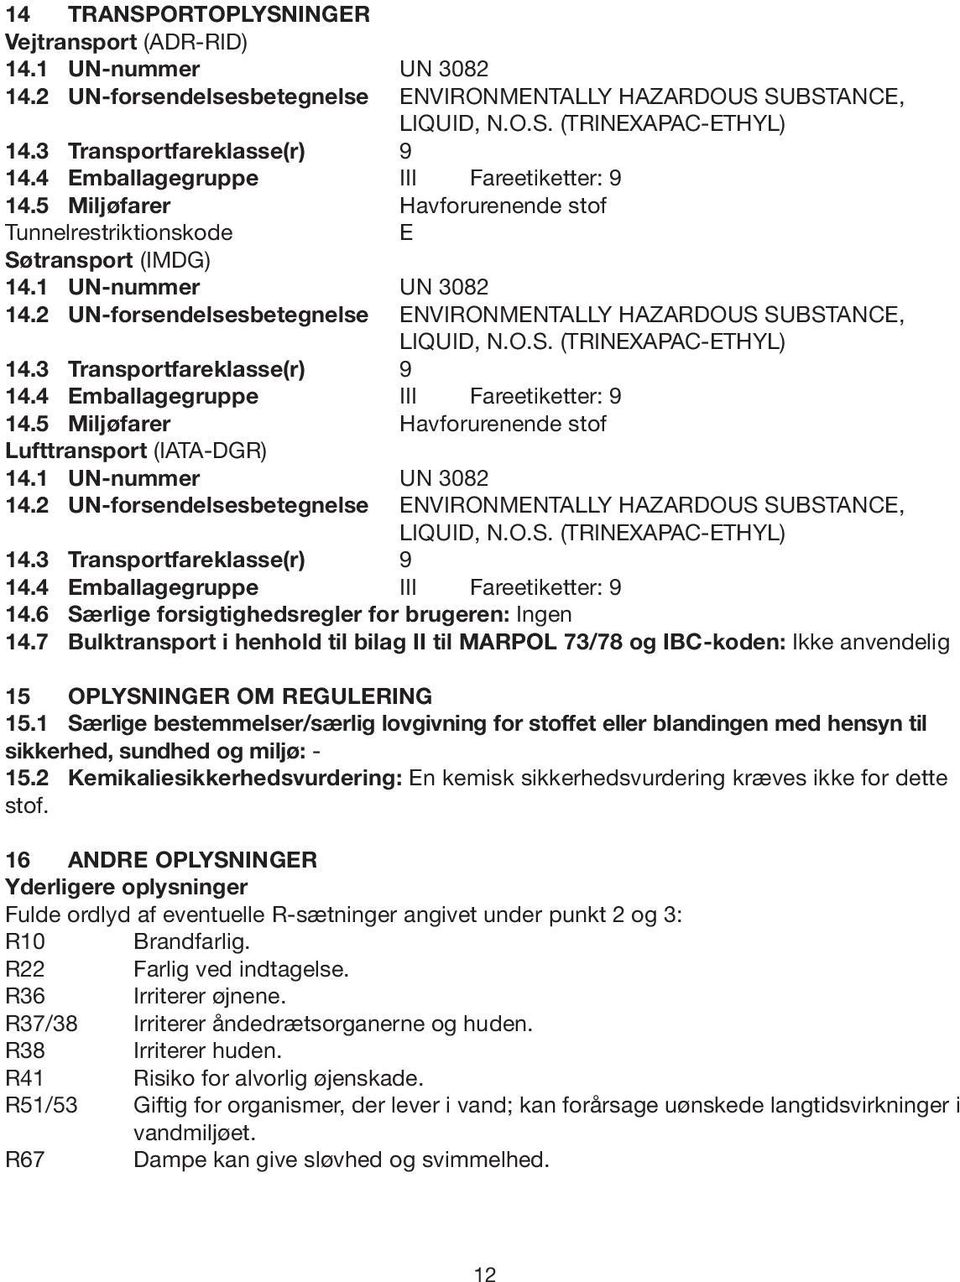 2 UN-forsendelsesbetegnelse ENVIRONMENTALLY HAZARDOUS SUBSTANCE, LIQUID, N.O.S. (TRINEXAPAC-ETHYL) 14.3 Transportfareklasse(r) 9 14.4 Emballagegruppe III Fareetiketter: 9 14.